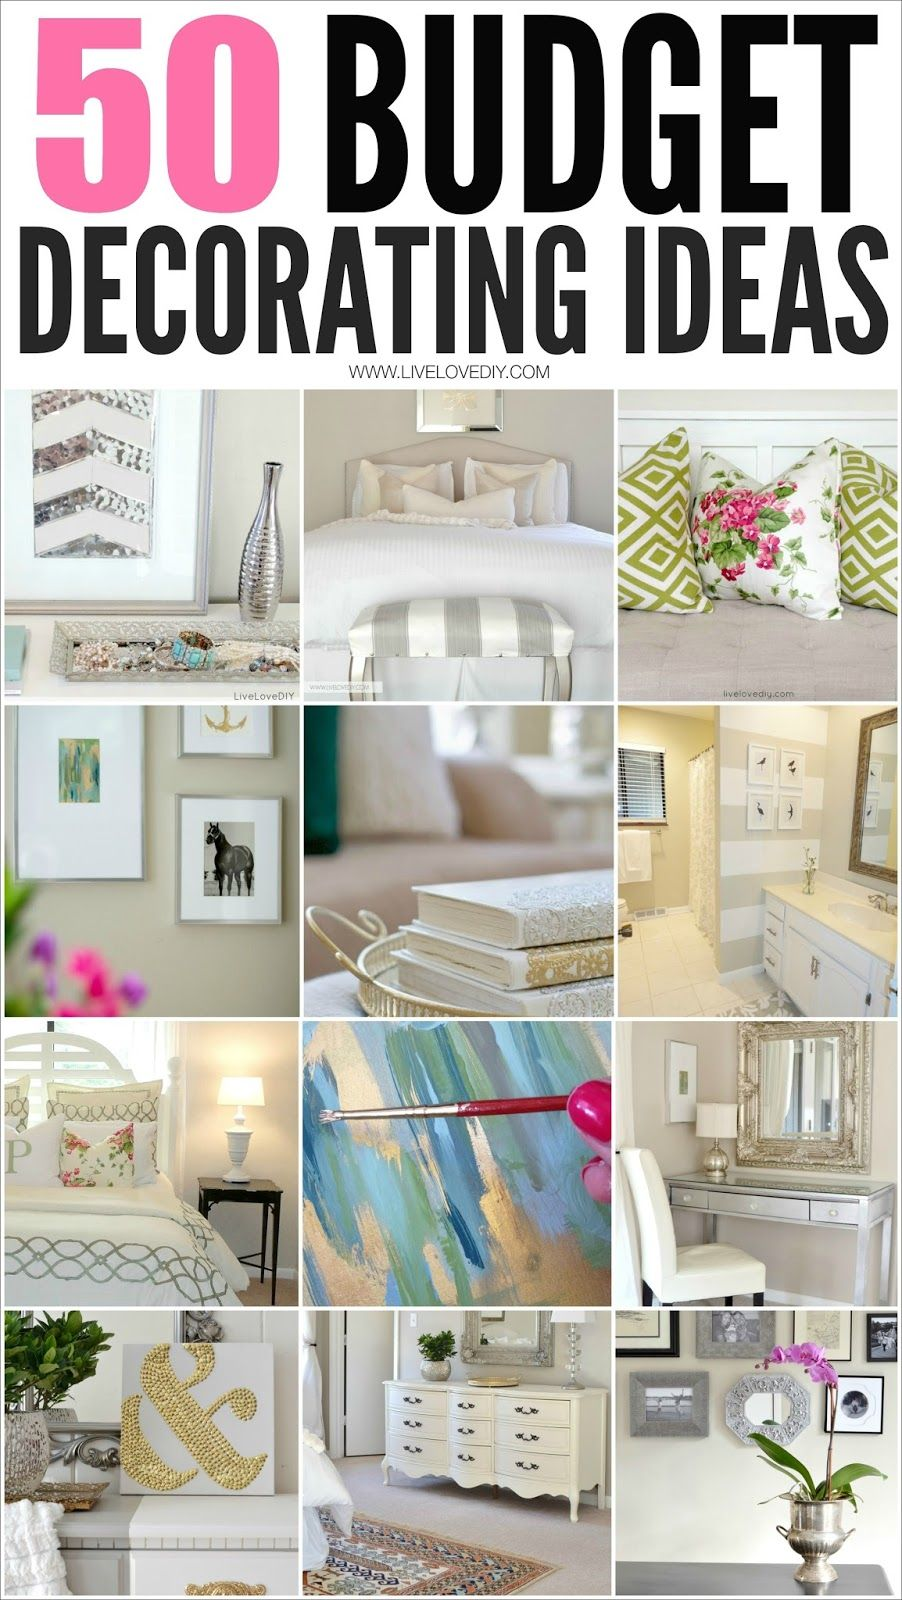 Budget Decorating Tips You Should Know LiveLoveDIY - Apartment decorating ideas cheap